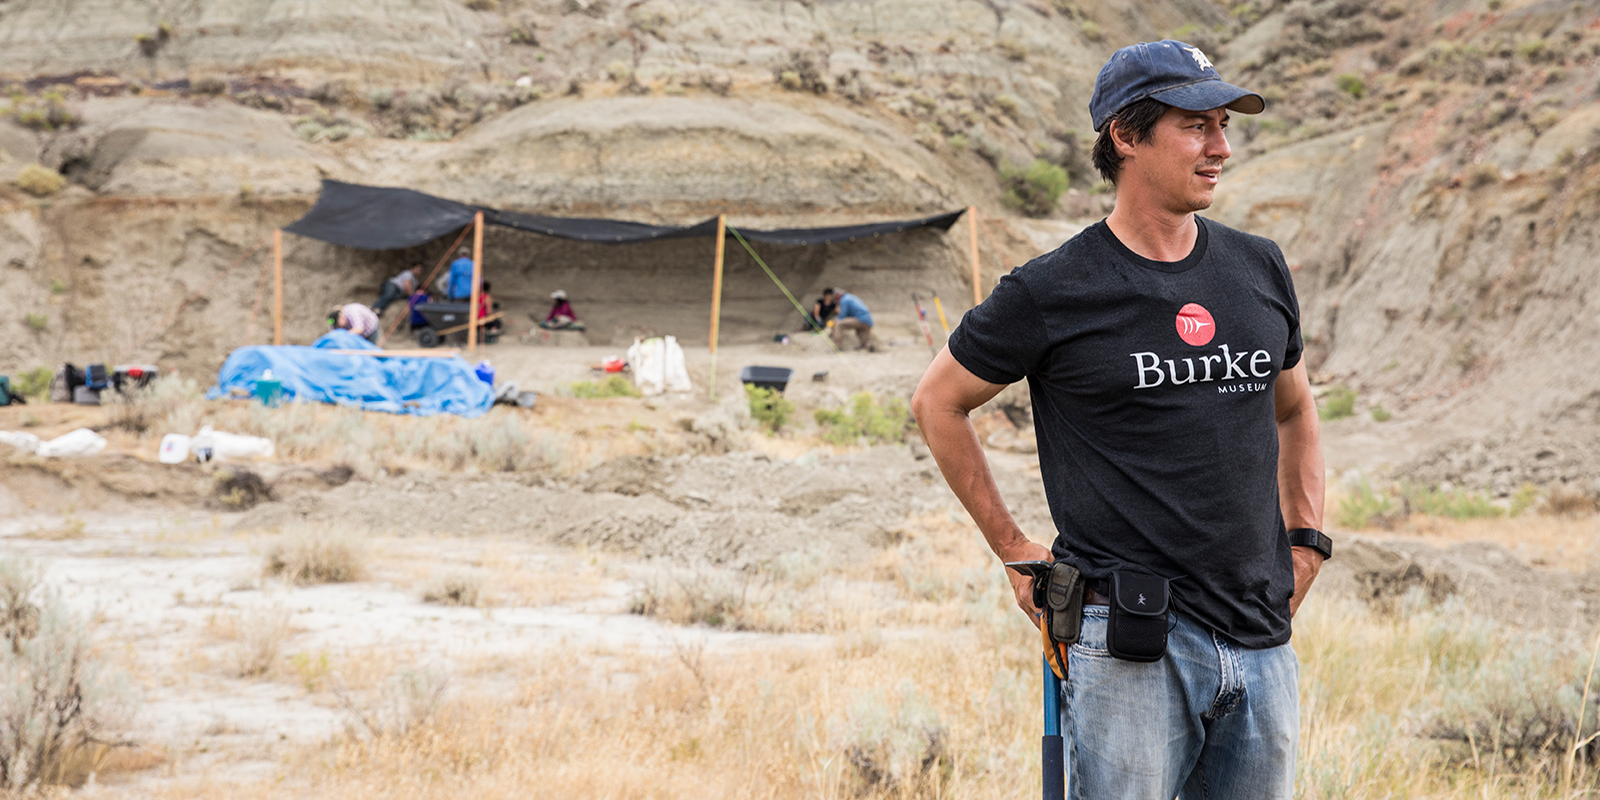 A palentologist with a Burke Museum tee shirt standing in front of a paleontology dig site